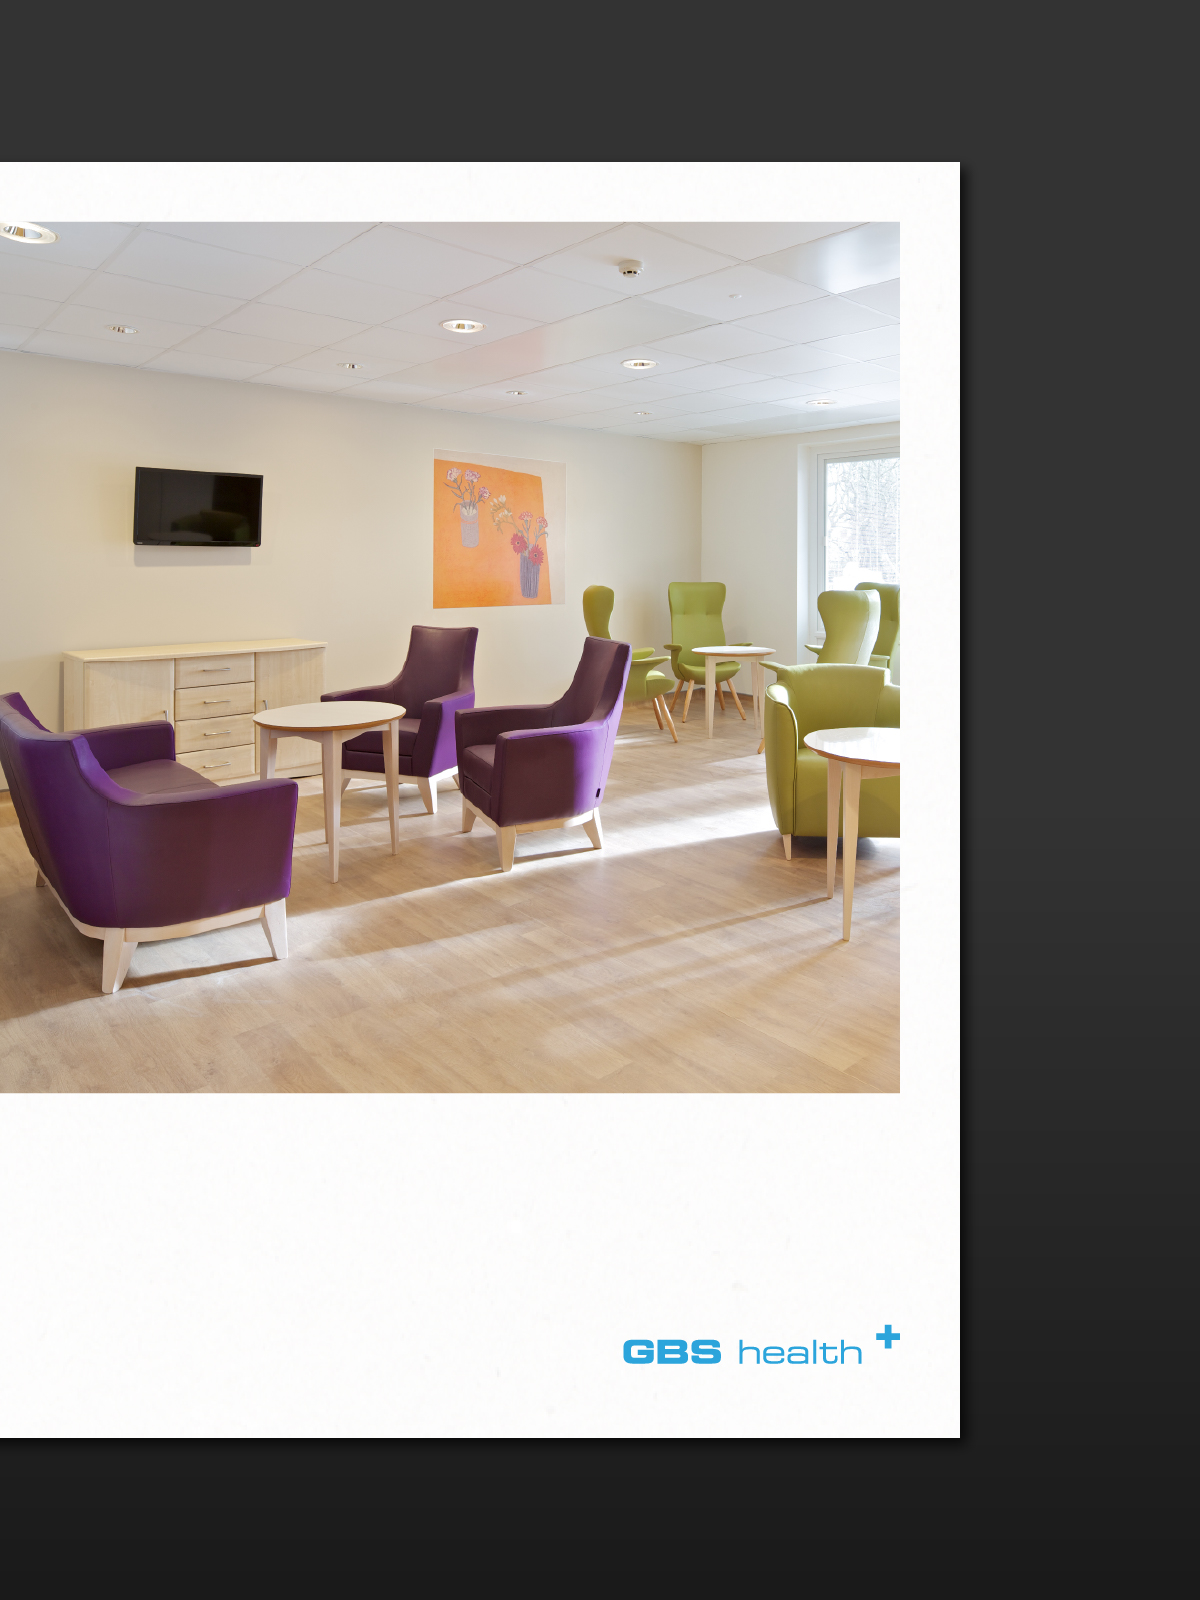 Flyer design with an image of a waiting room for GBS Architects